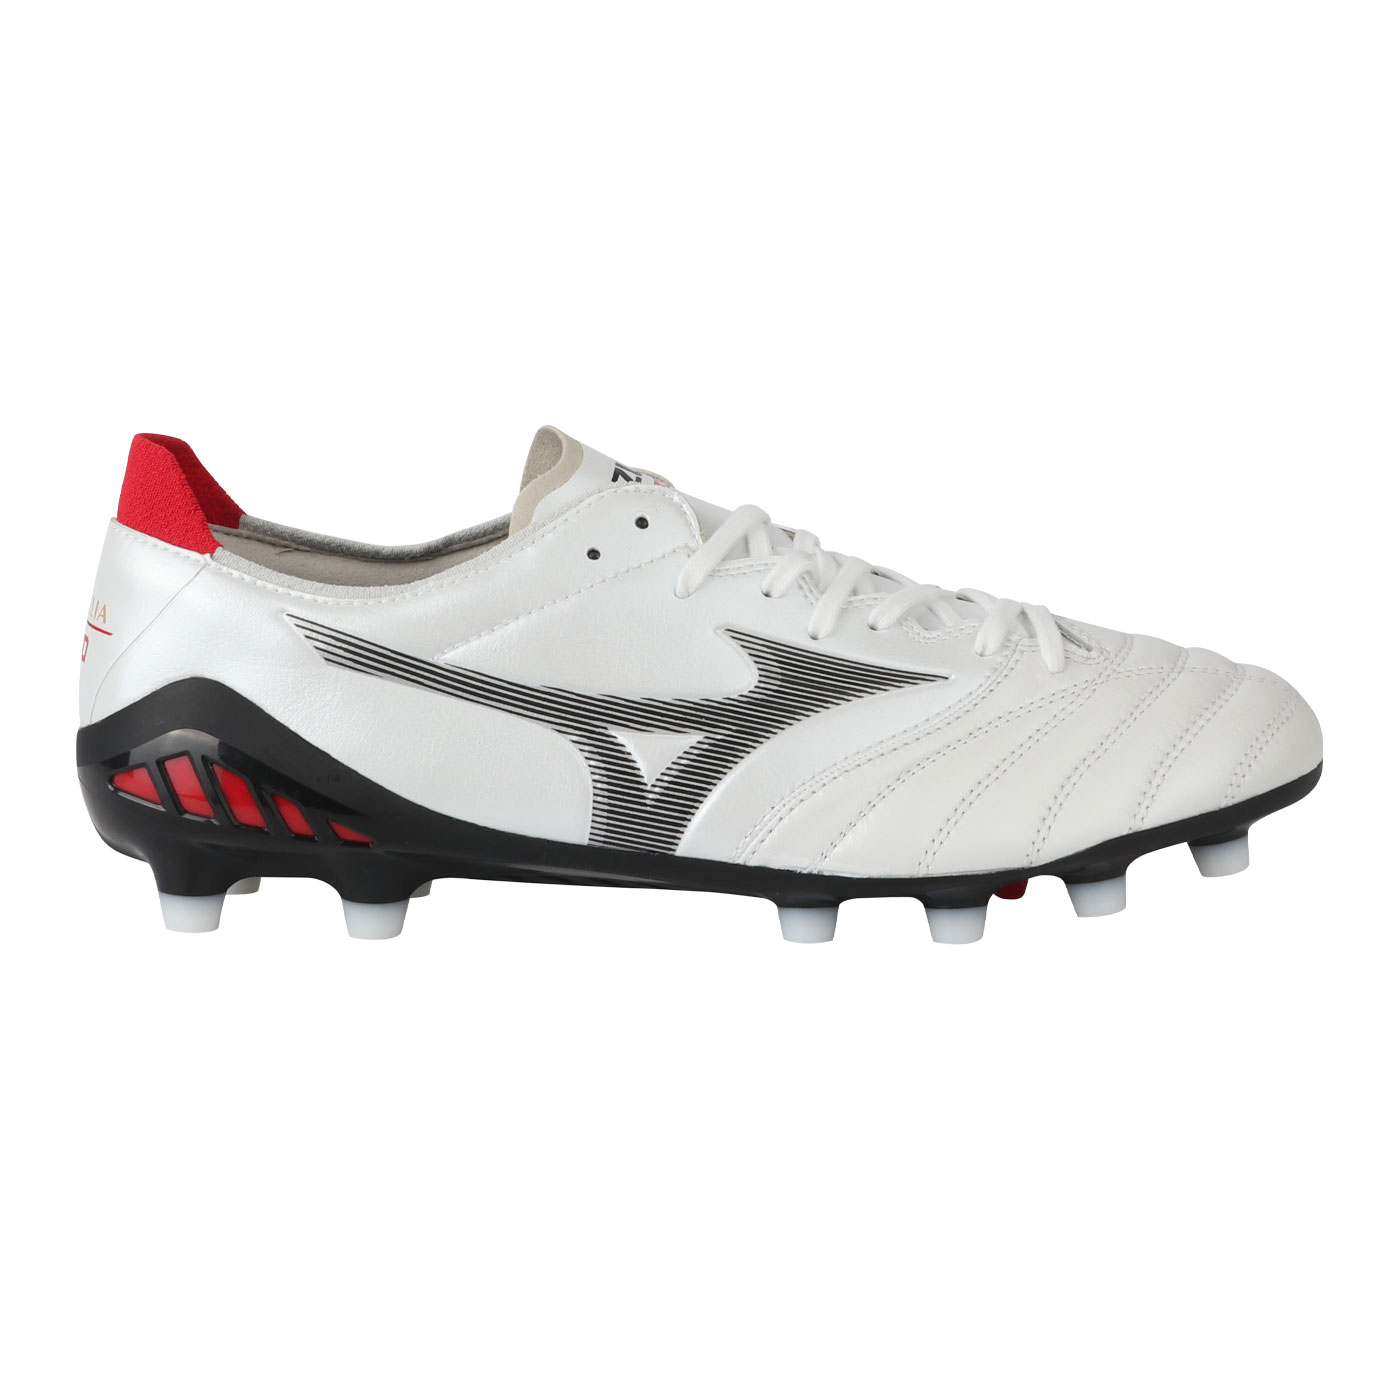 MORELIA NEO III ELITE-WHITE/BLACK/CHINESE RED